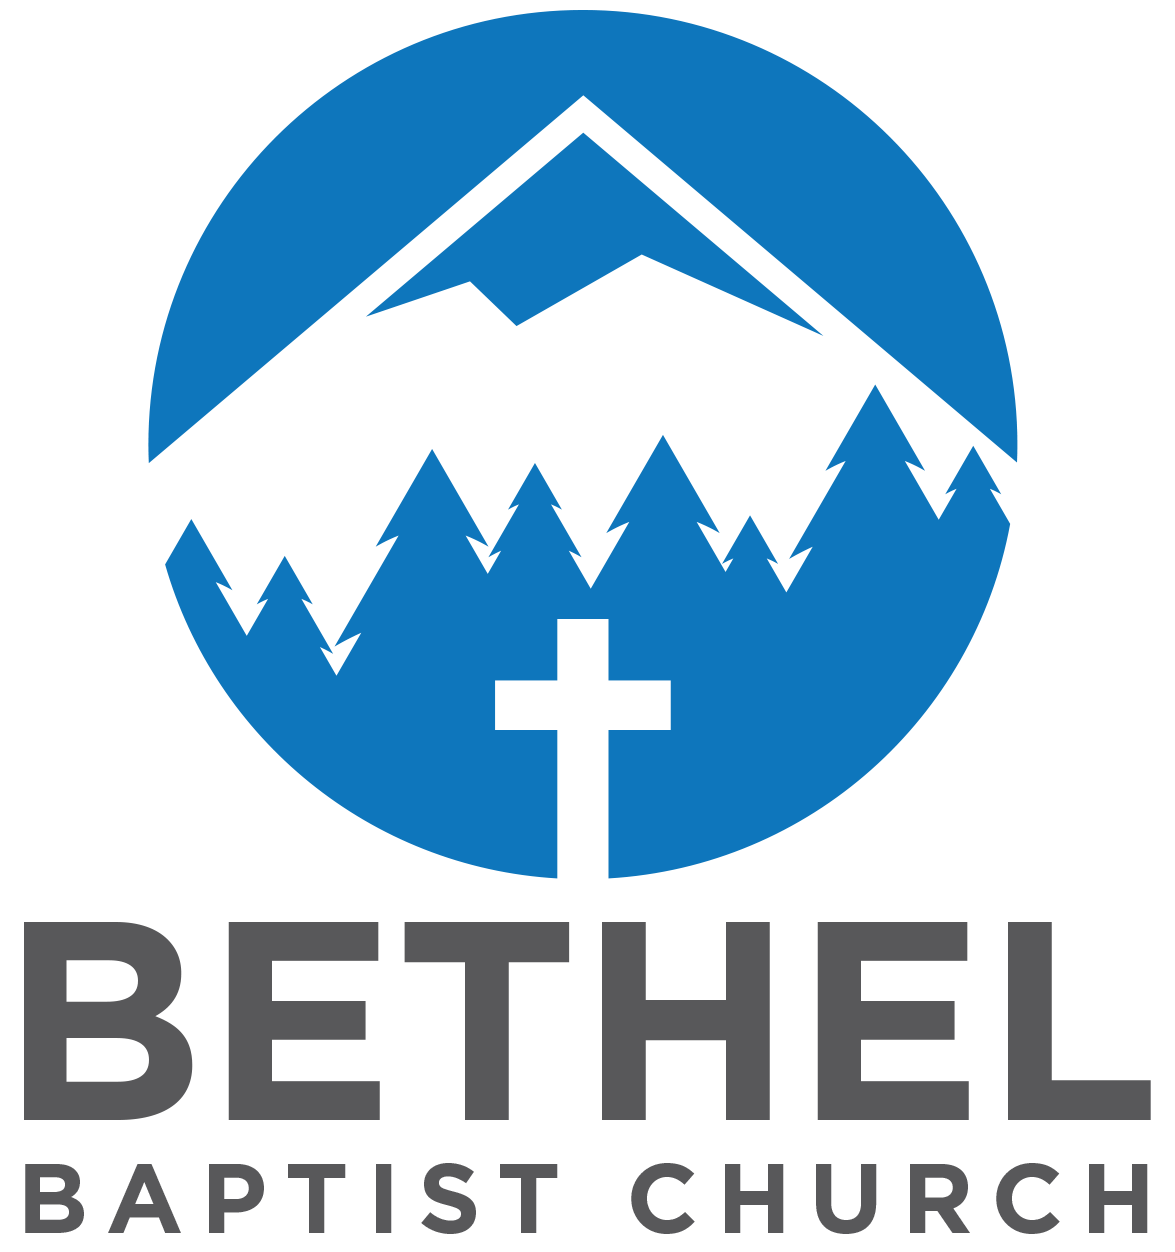 An exciting, Bible-preaching church located near Tacoma, WA and  JBLM